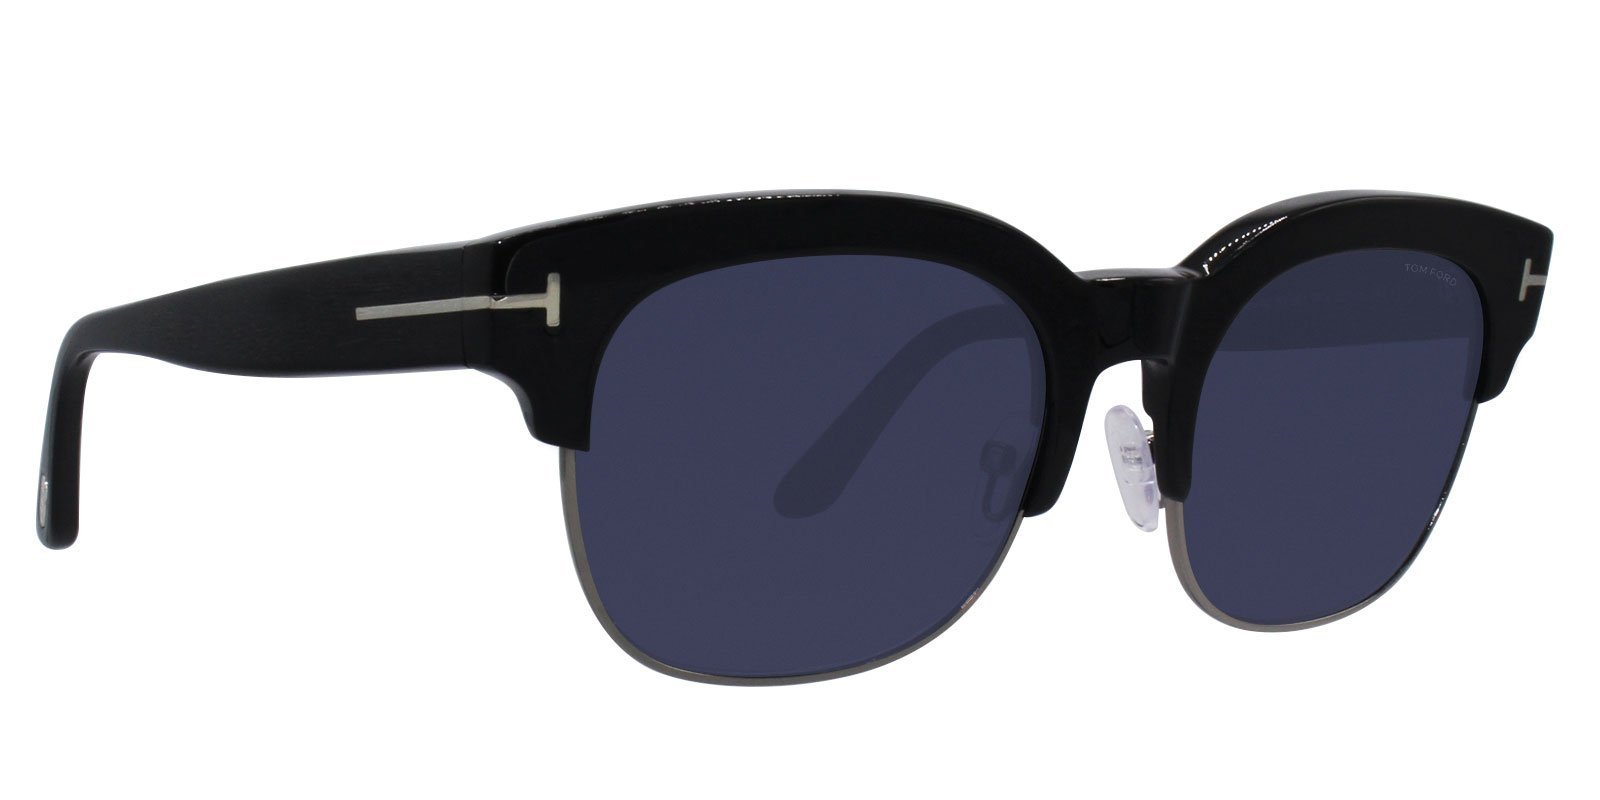 Tom Ford Harry-02 Black / Blue Lens Sunglasses-sunglasses-Designer Eyes